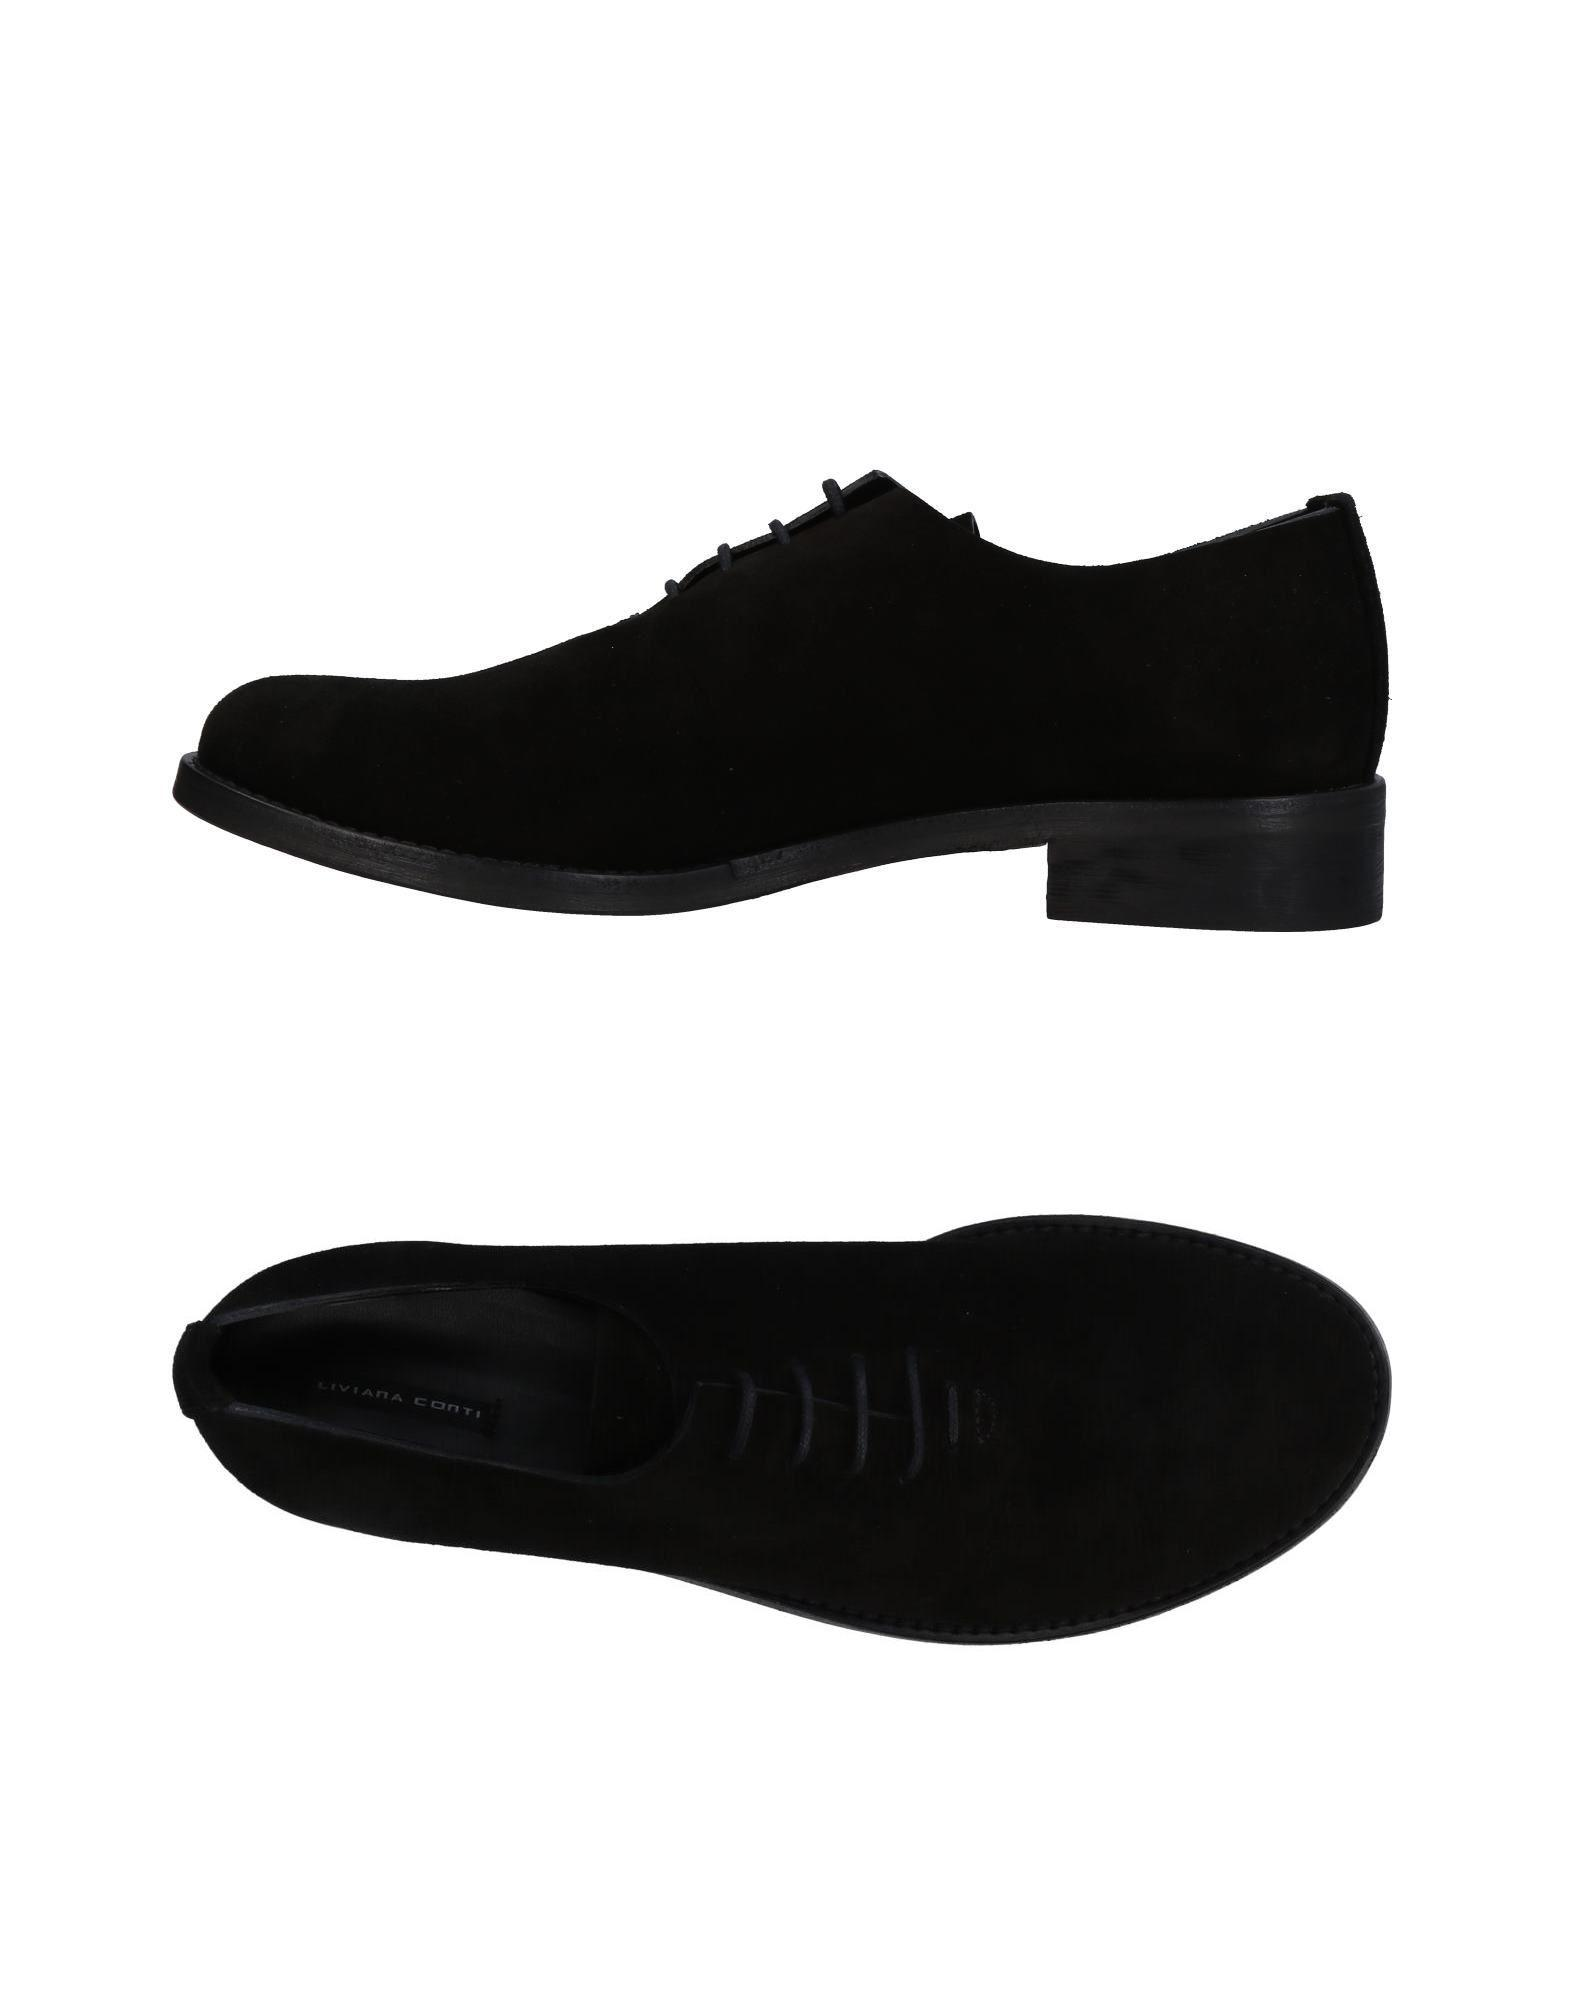 Liviana Conti Lace-up Shoes In Black